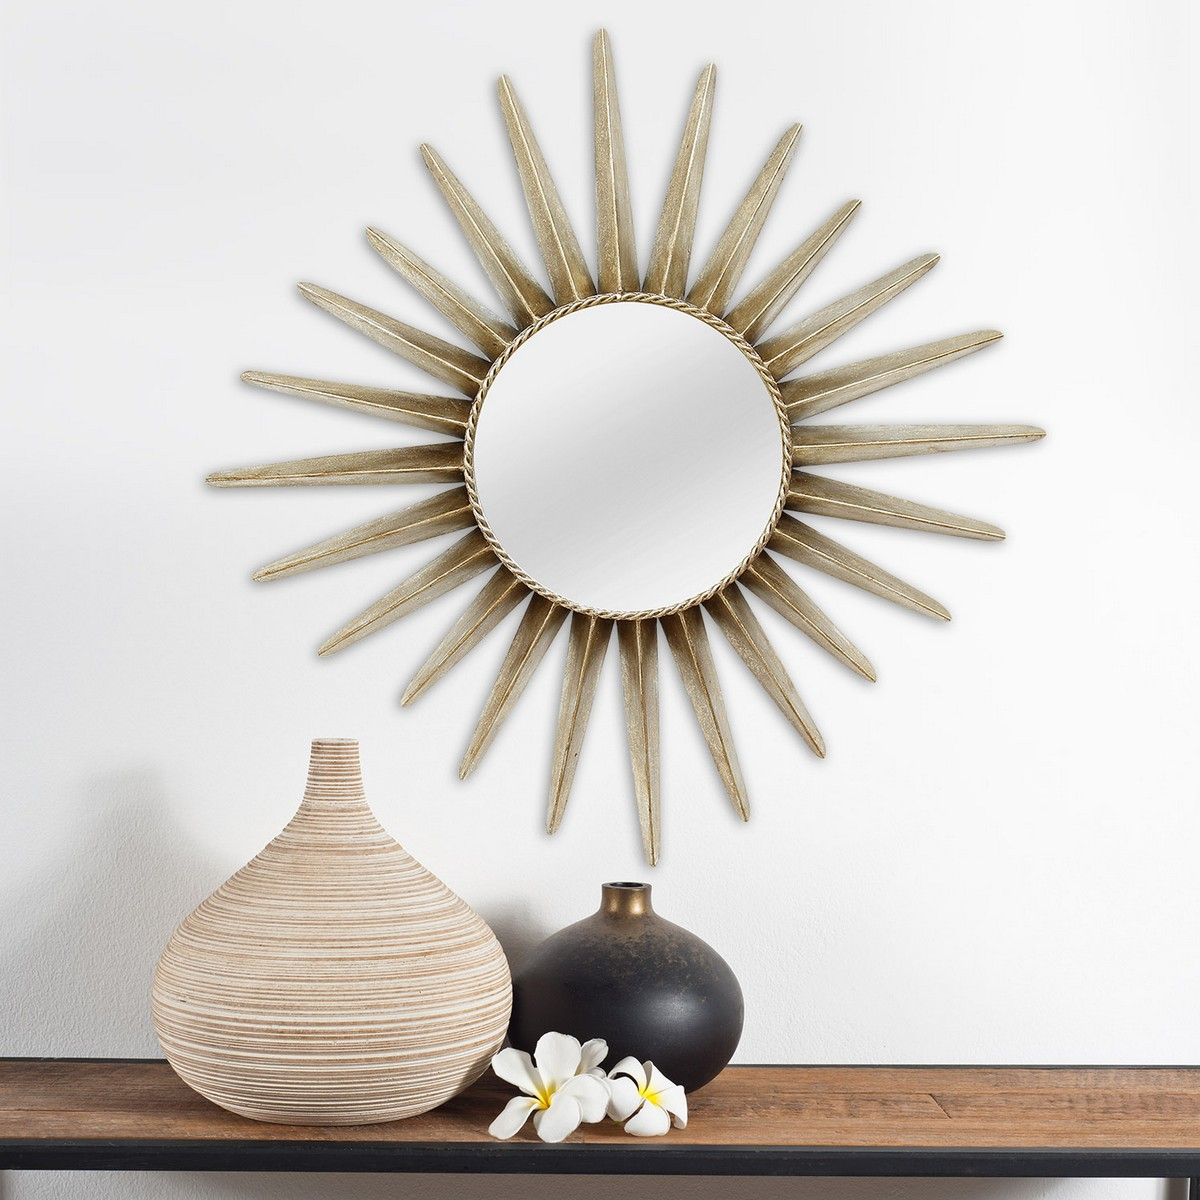 Stratton Home Decor Charlotte Wall Mirror - Bronze